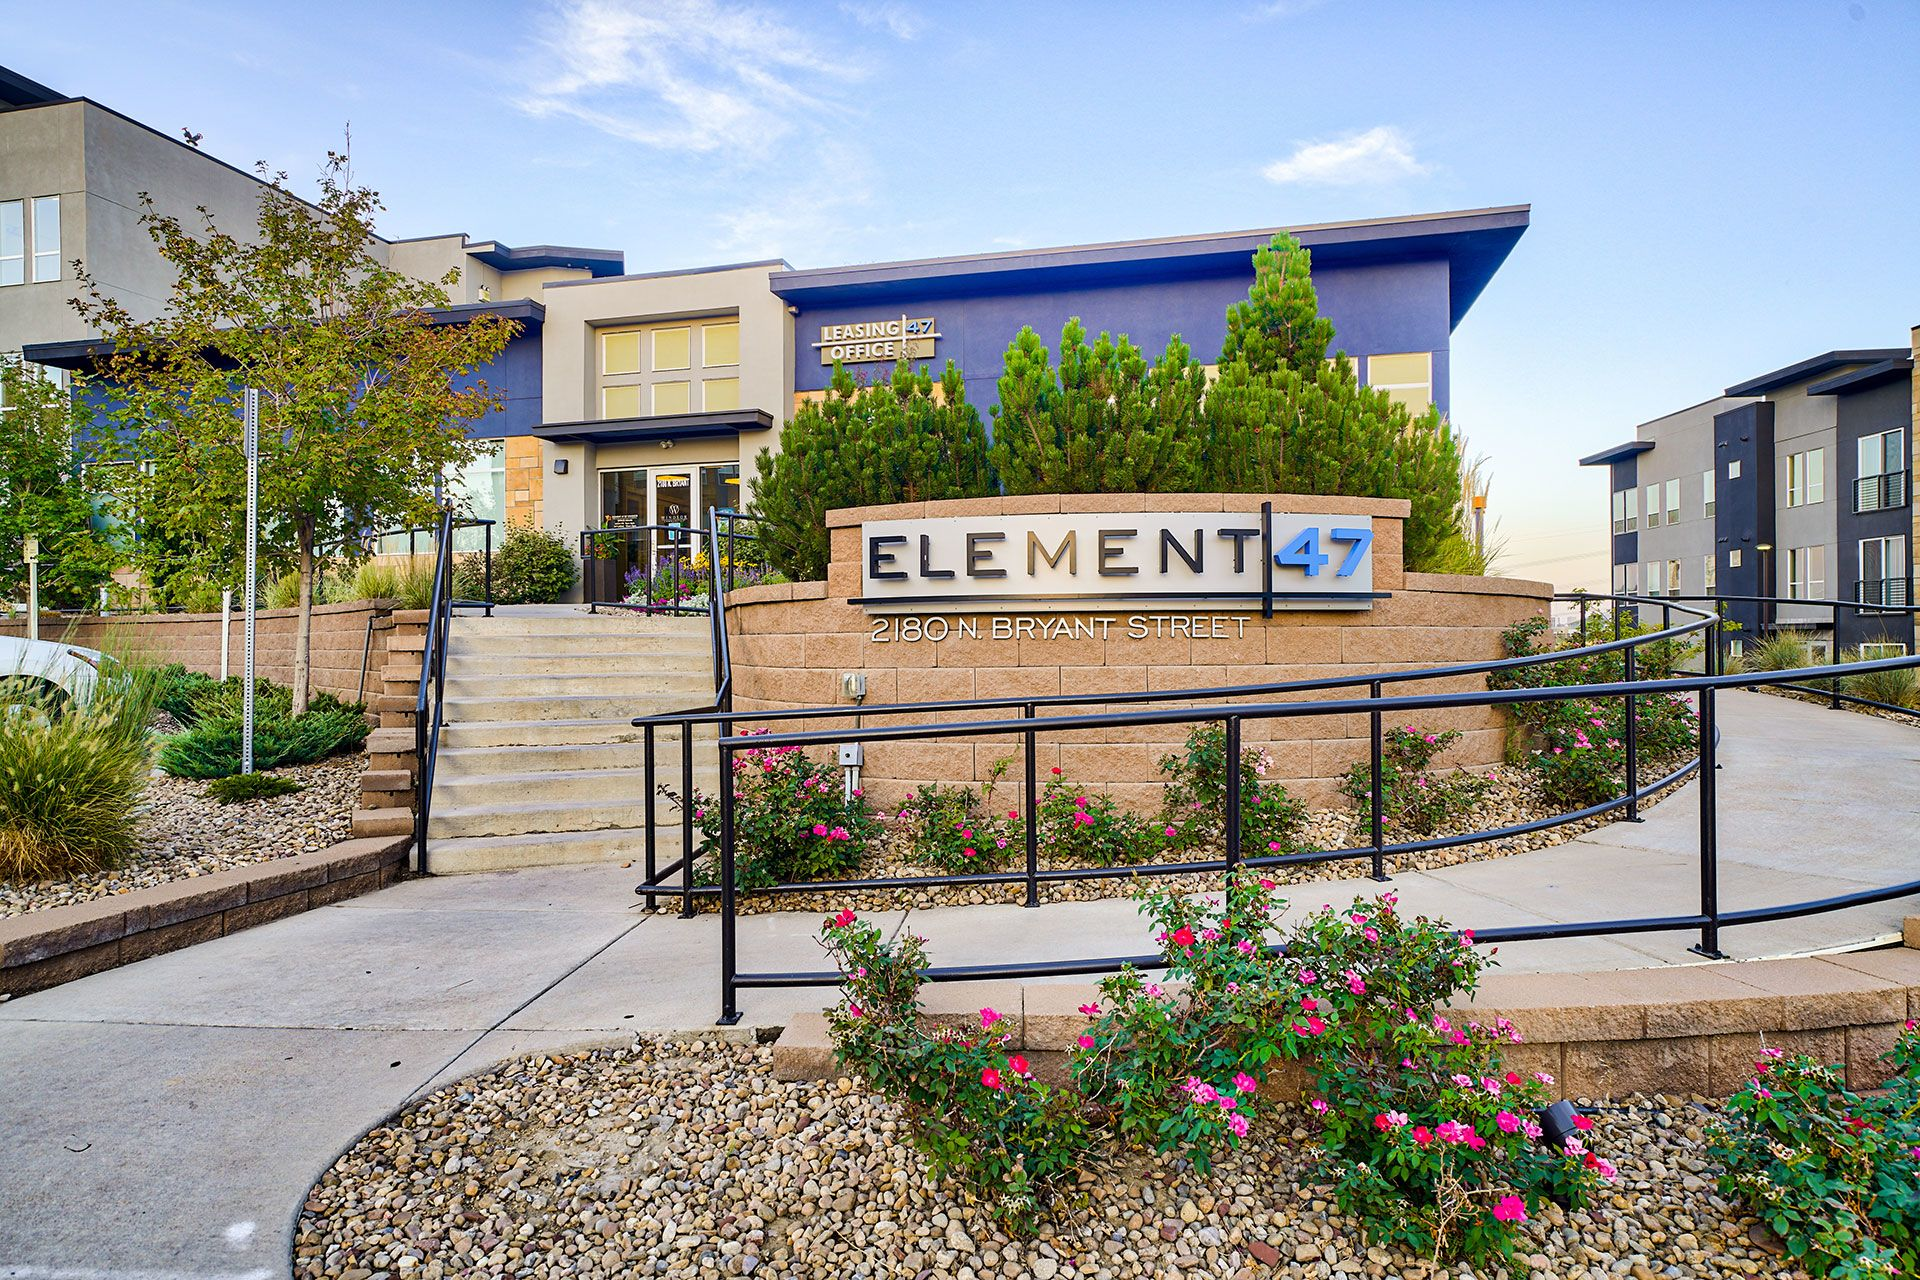 Exterior street view of building at Element 47 by Windsor, 2180 N. Bryant St., Denver